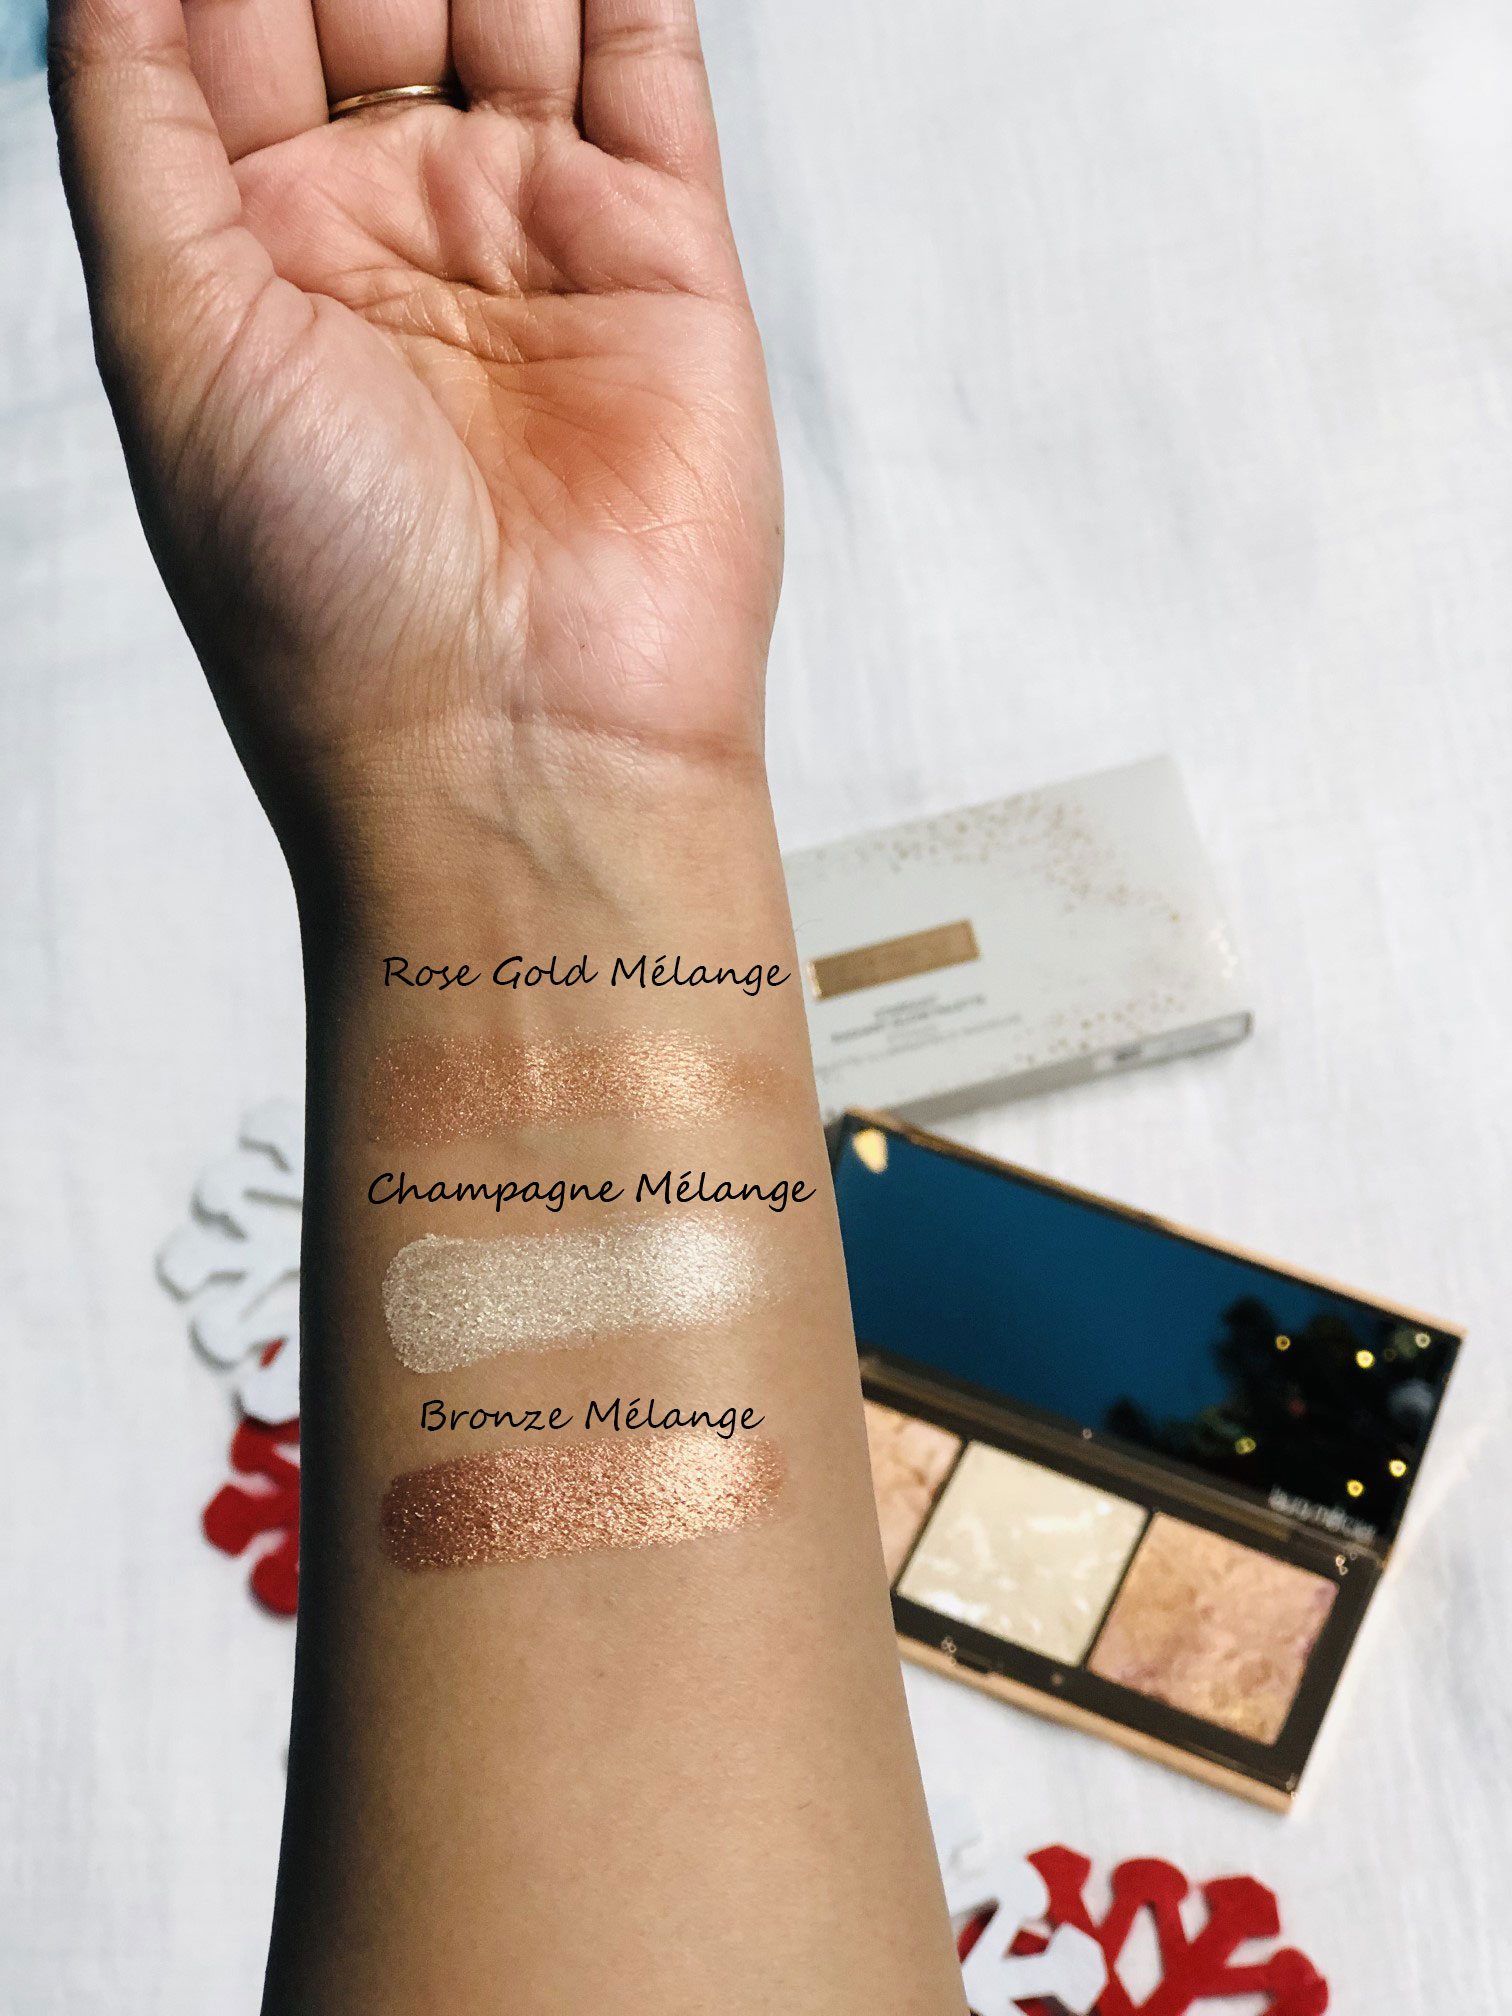 laura-mercier-stardust-glow-palette-shades-swatches-review-the-jeromy-diaries-txt